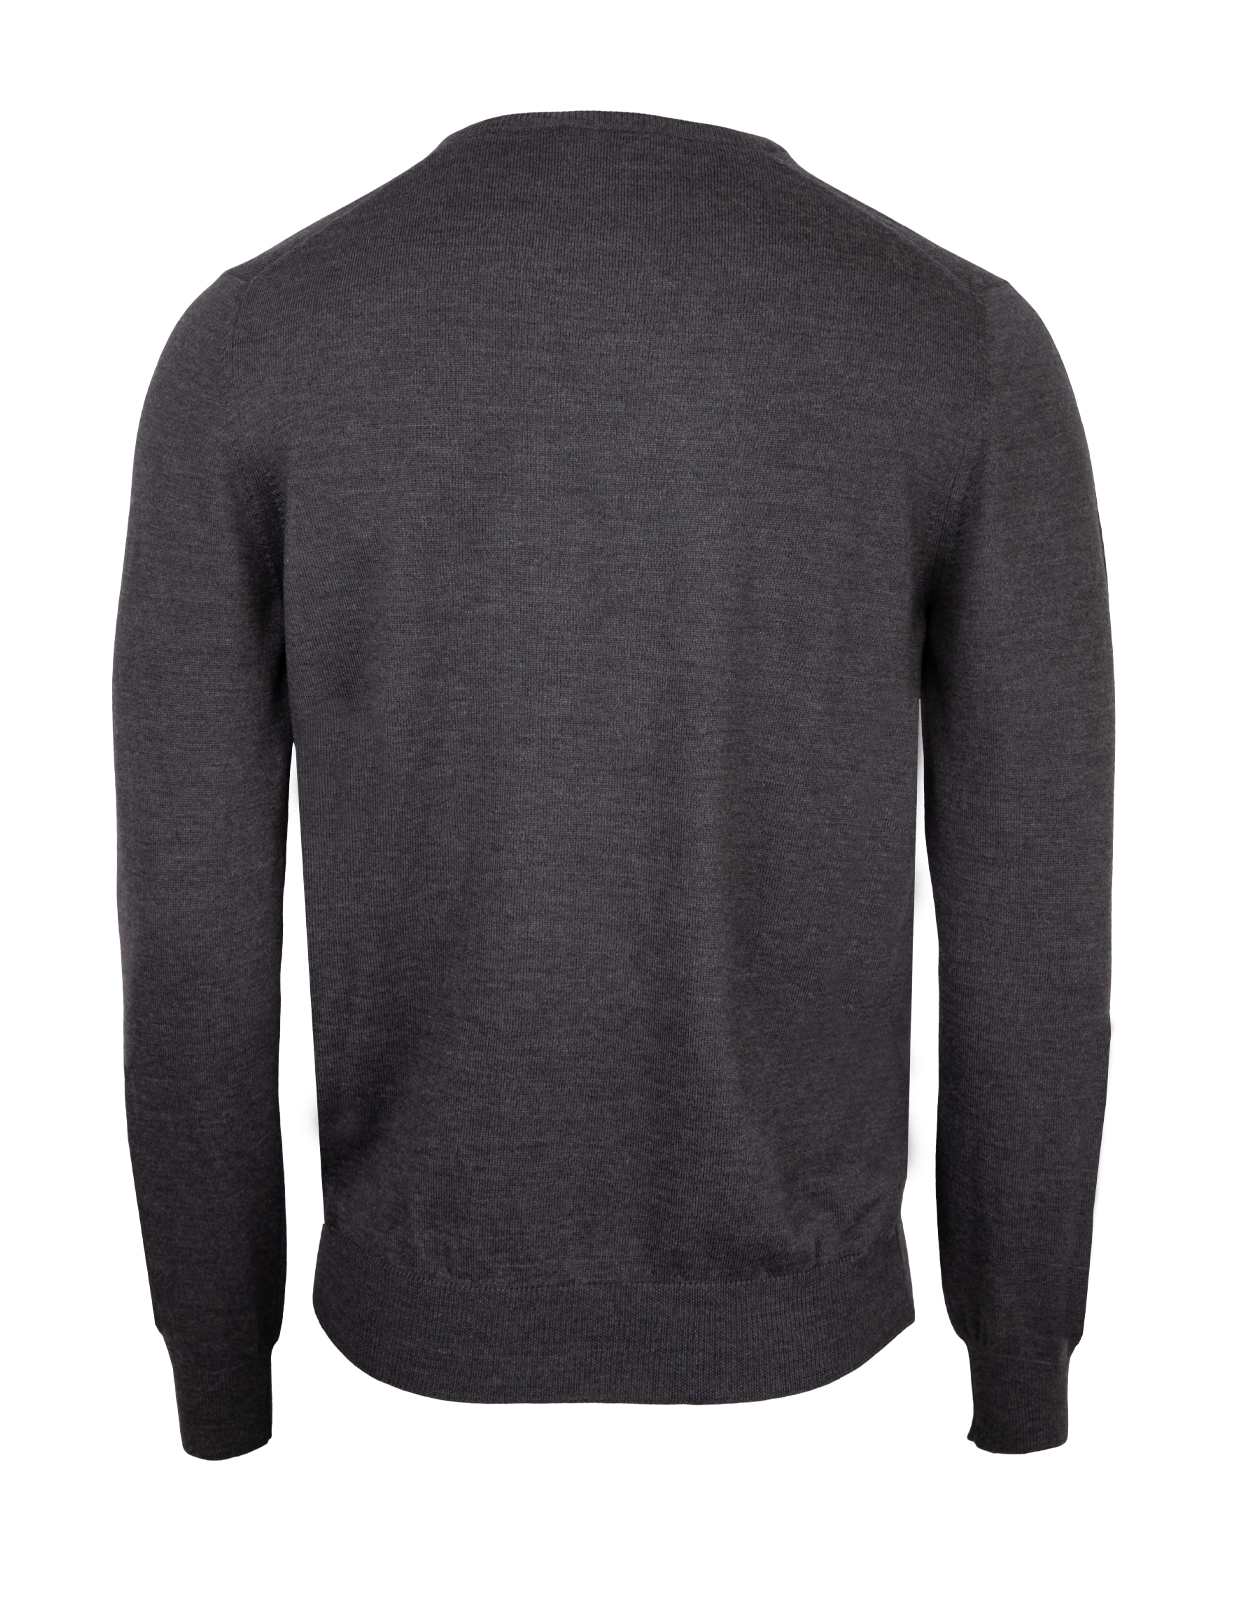 Fashion Fit Crew Neck Merino Pullover Charcoal